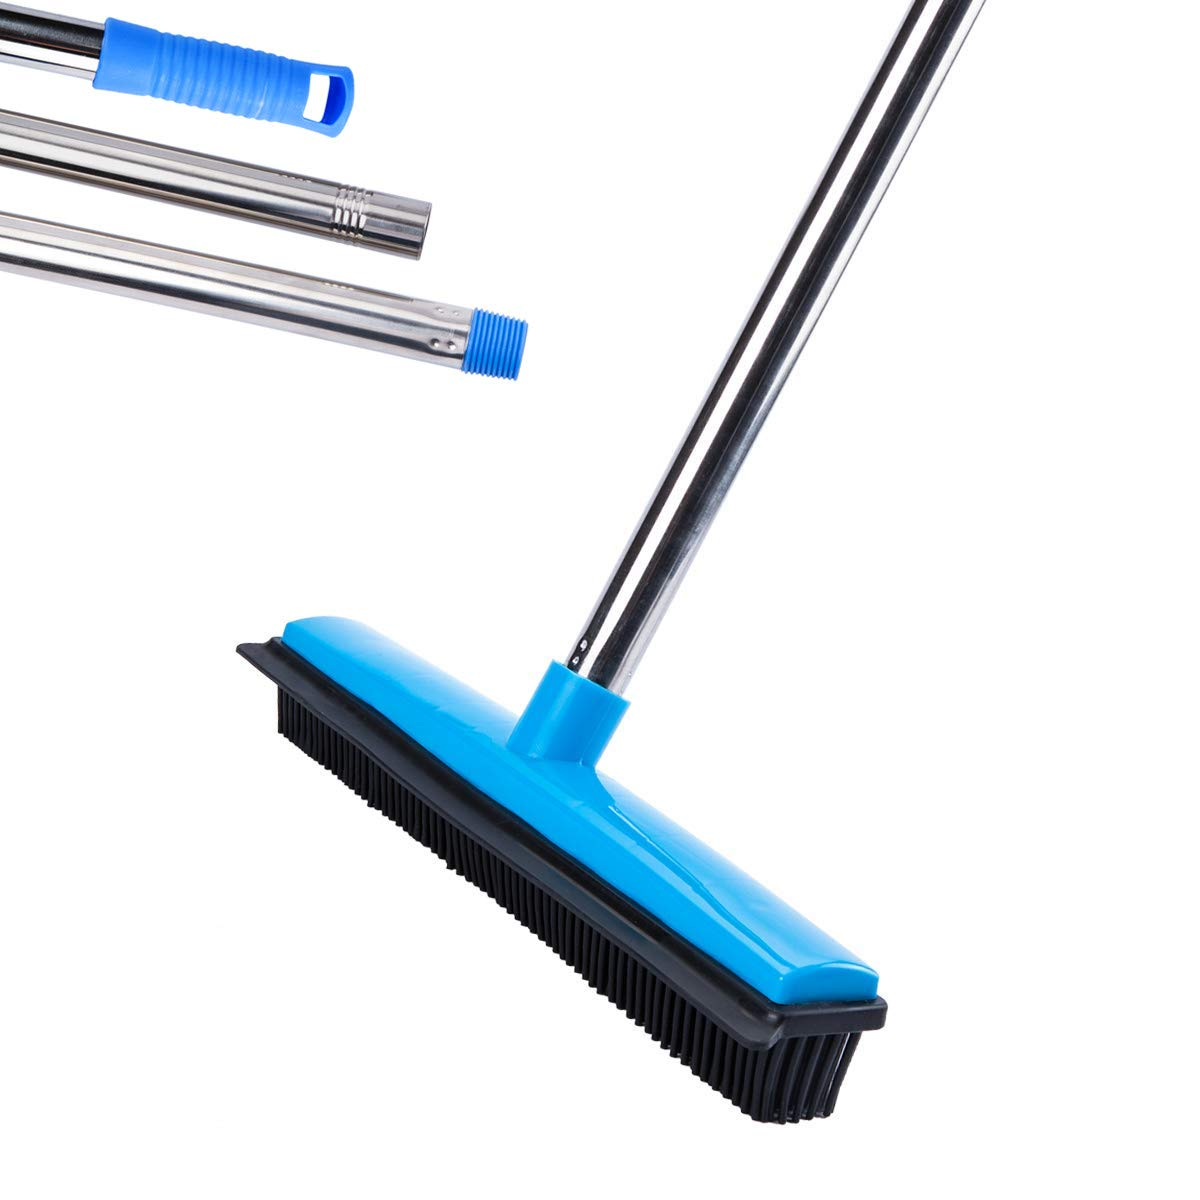 MEIBEI Push Broom, Soft Bristle Rubber Broom with Adjustable Long Handle - 53'', Carpet Sweeper with Squeegee, Removing Pet Cat Dog Hair on the Carpet, Sturdy and Durable